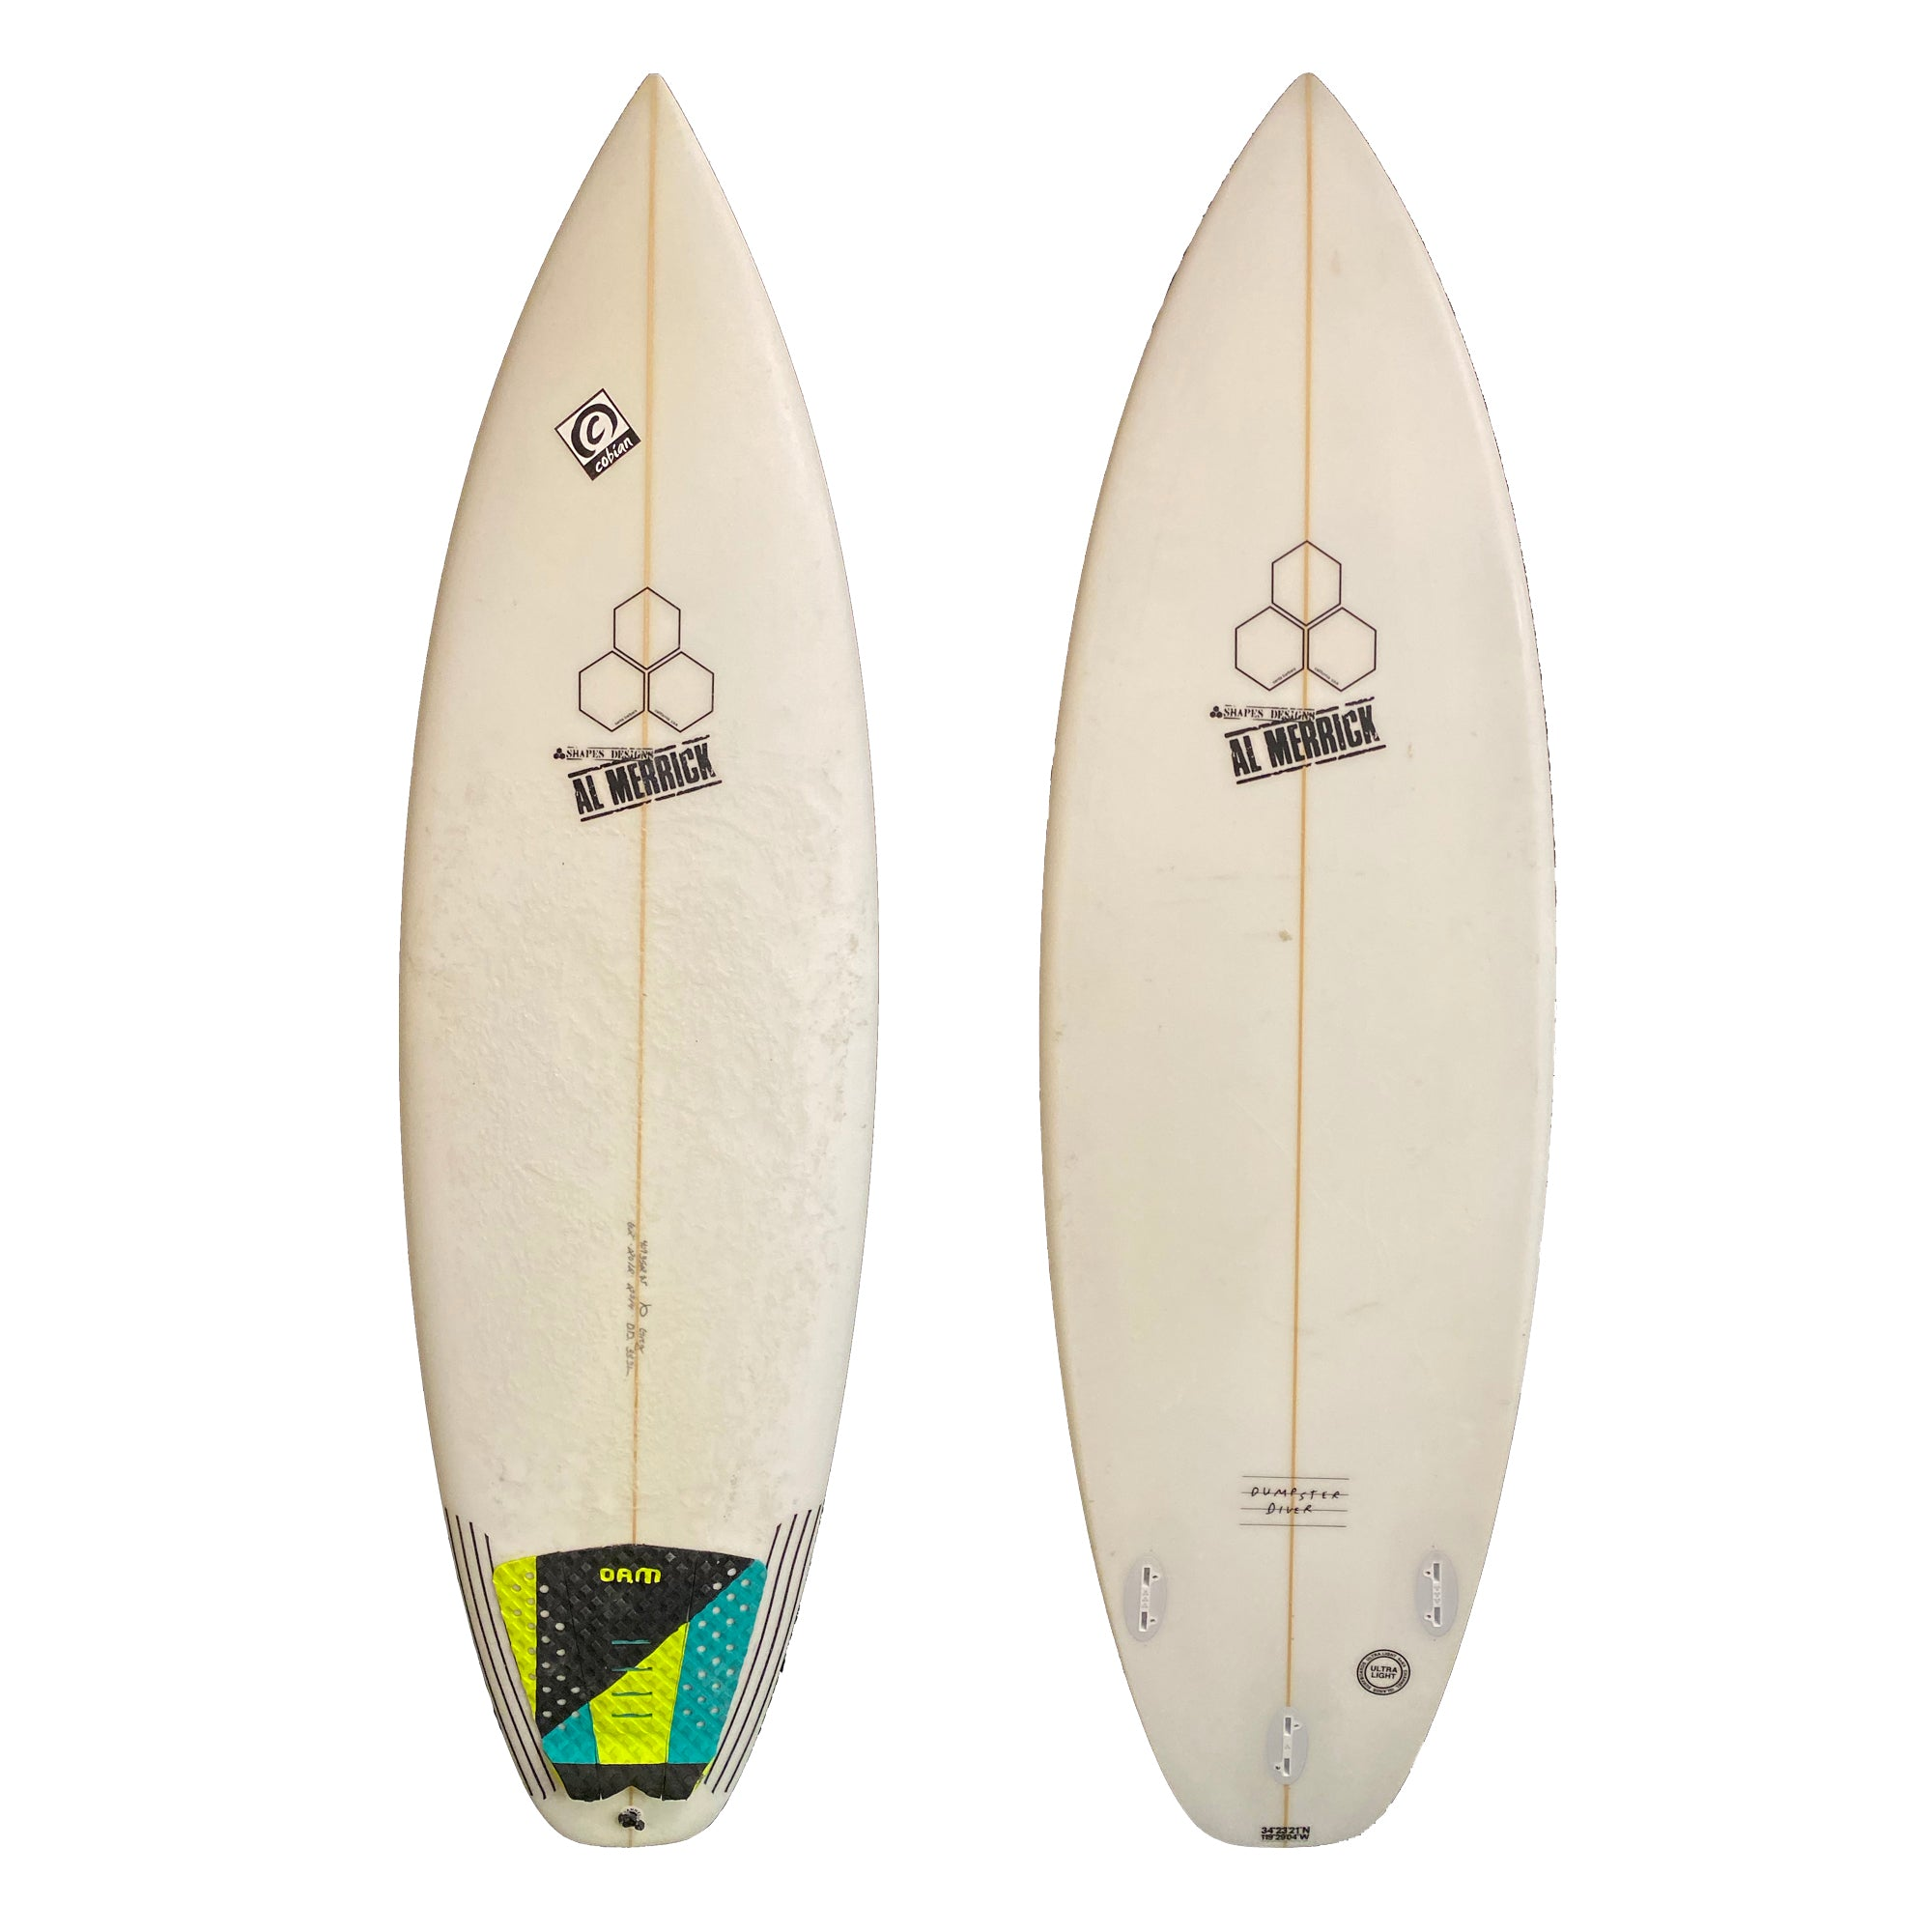 Channel Islands Dumpster Diver 6'2 Used Surfboard